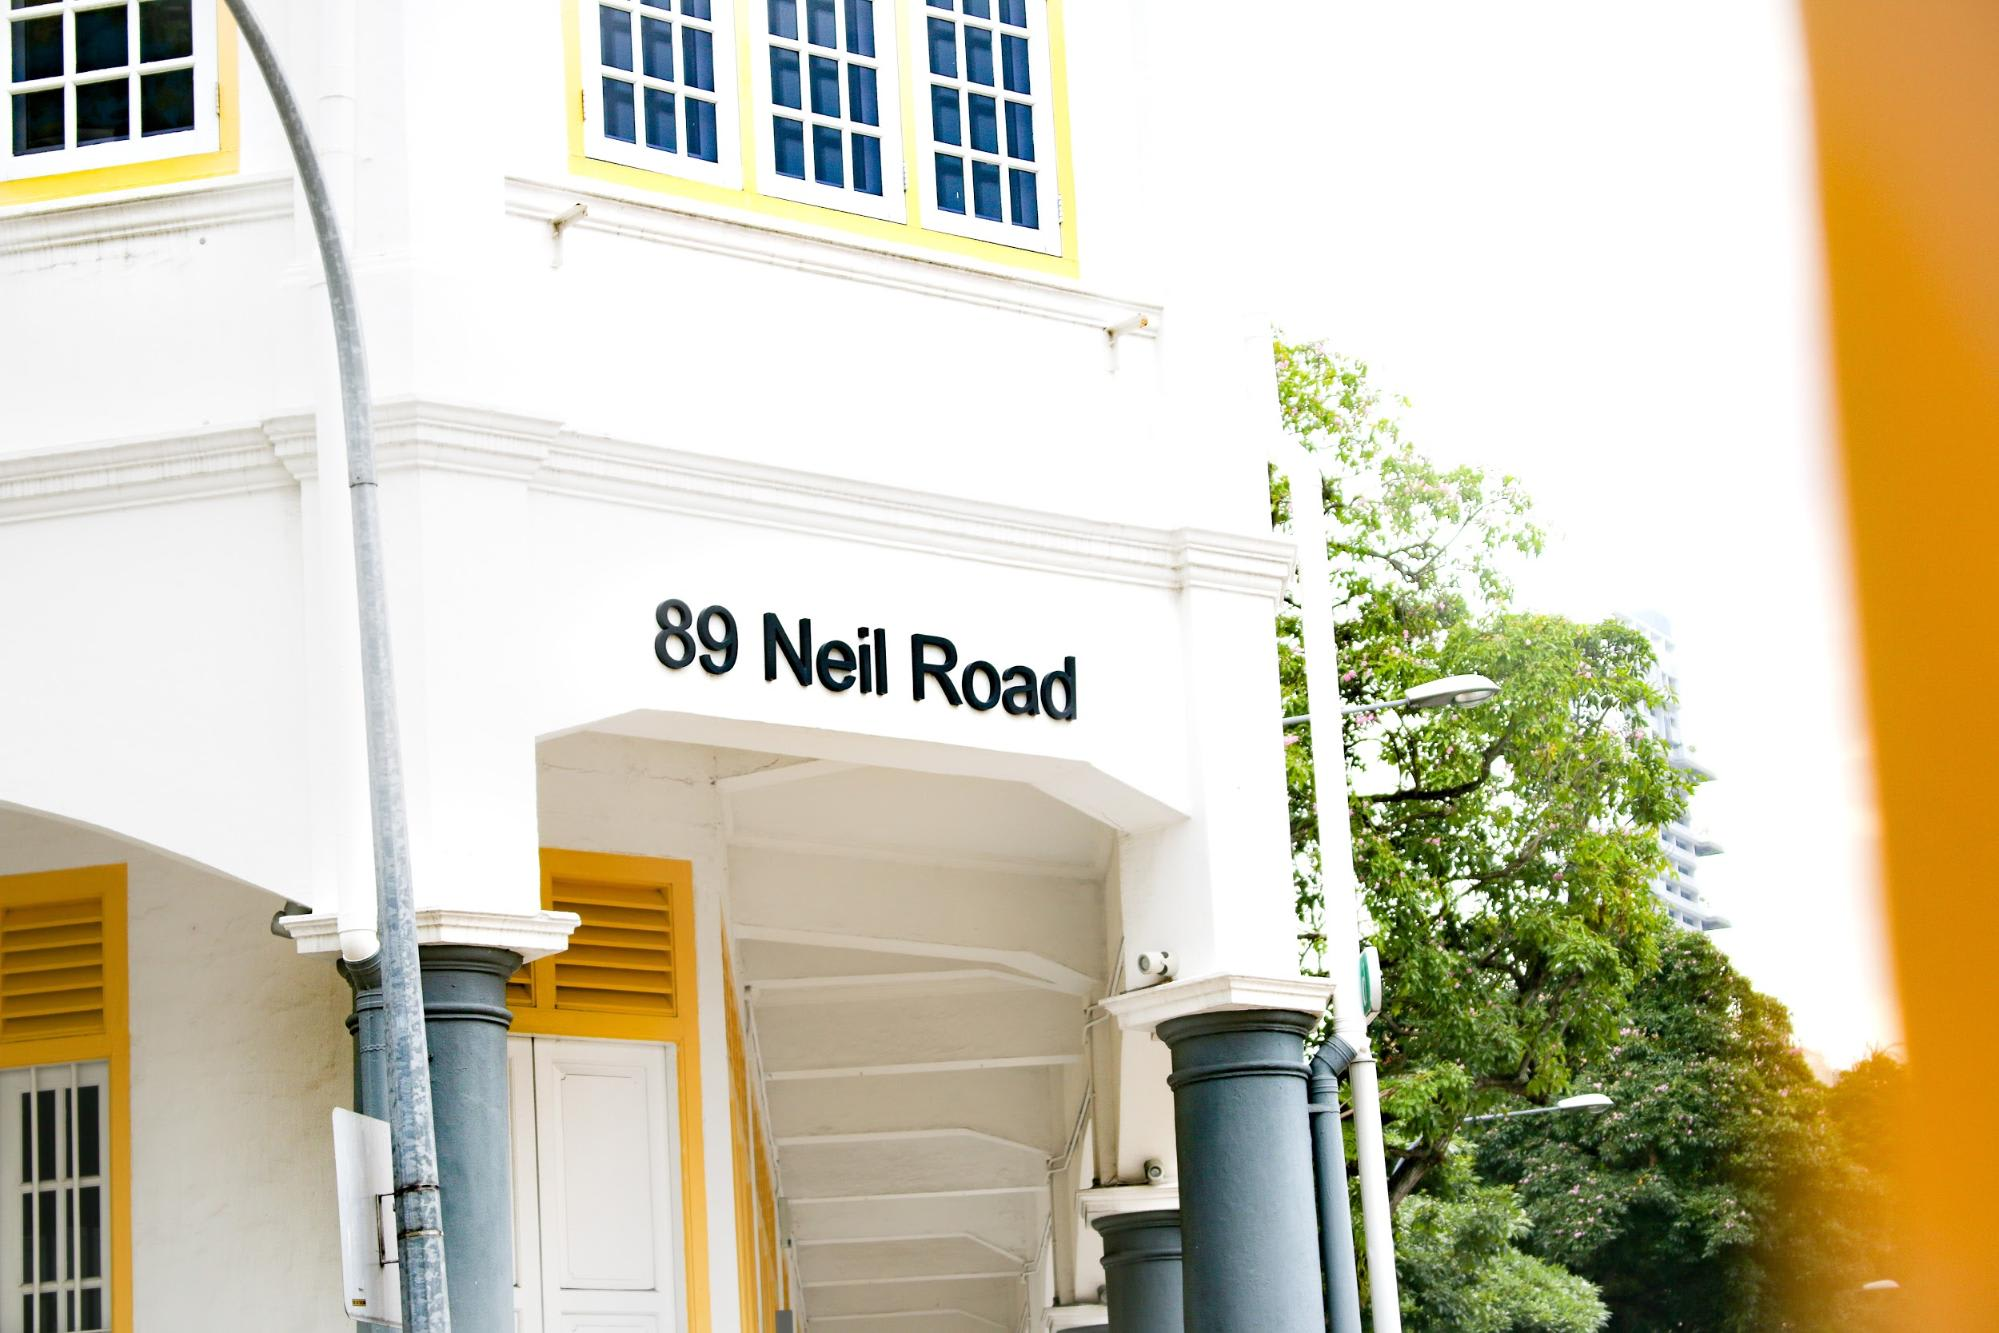 89 Neil Road Tiger Balm Factory